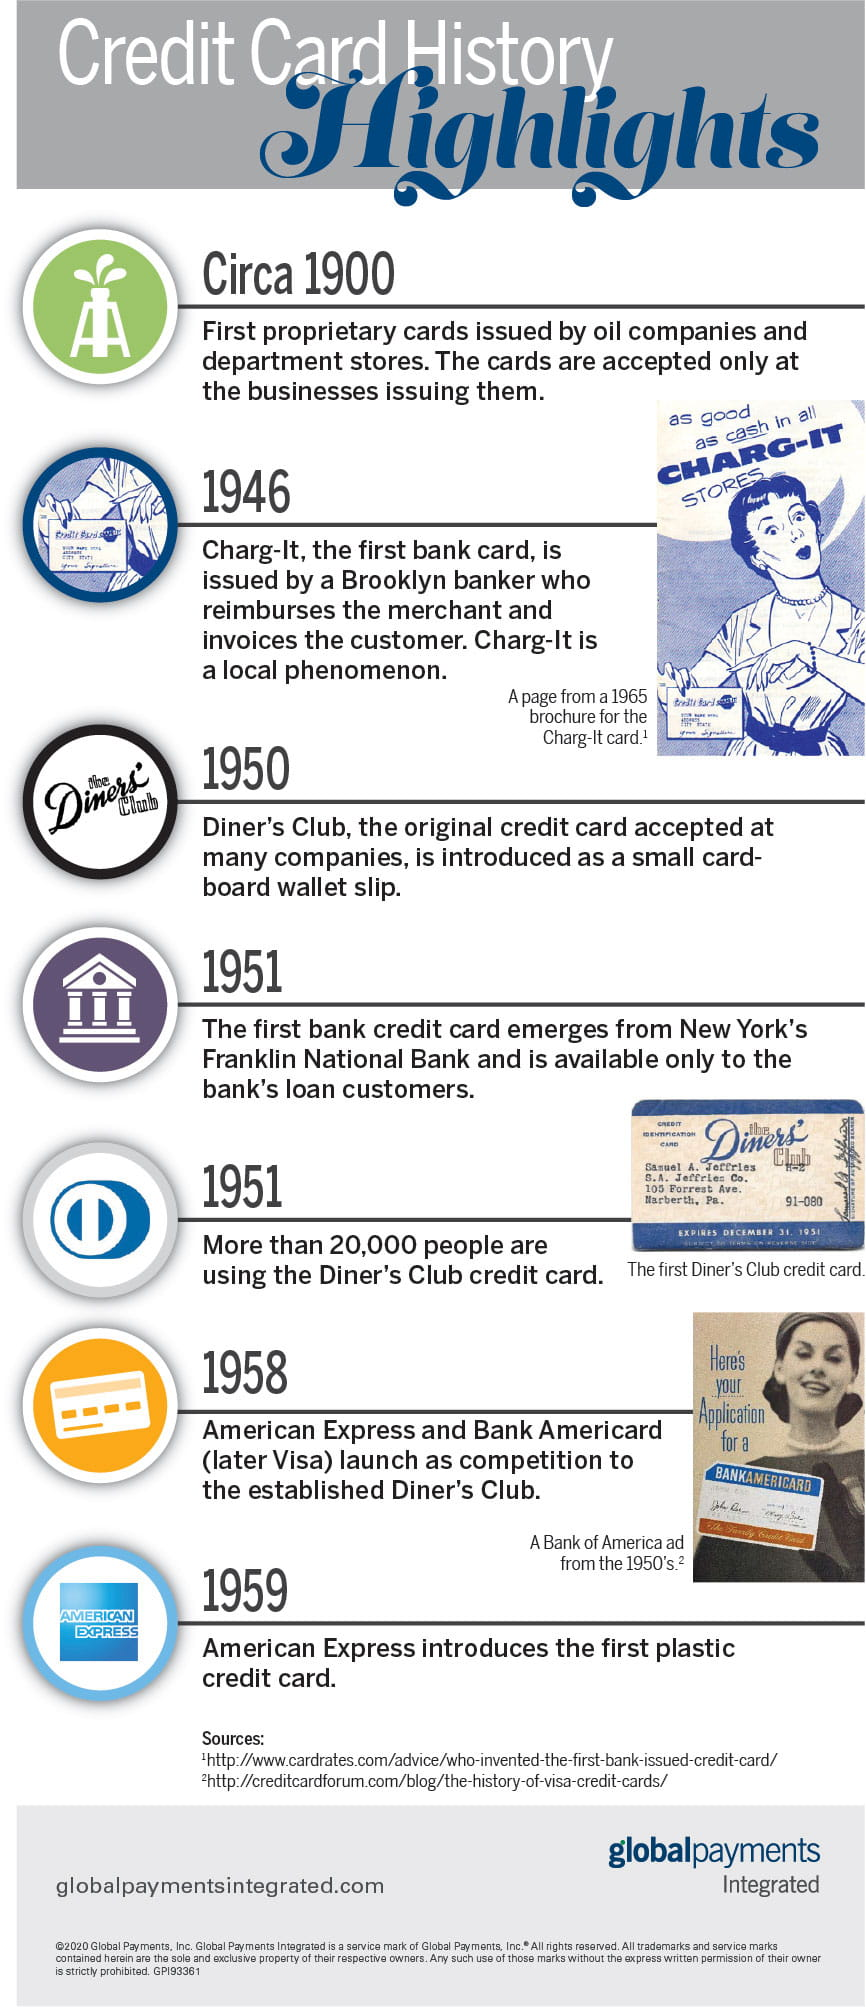 History of the credit card infographic